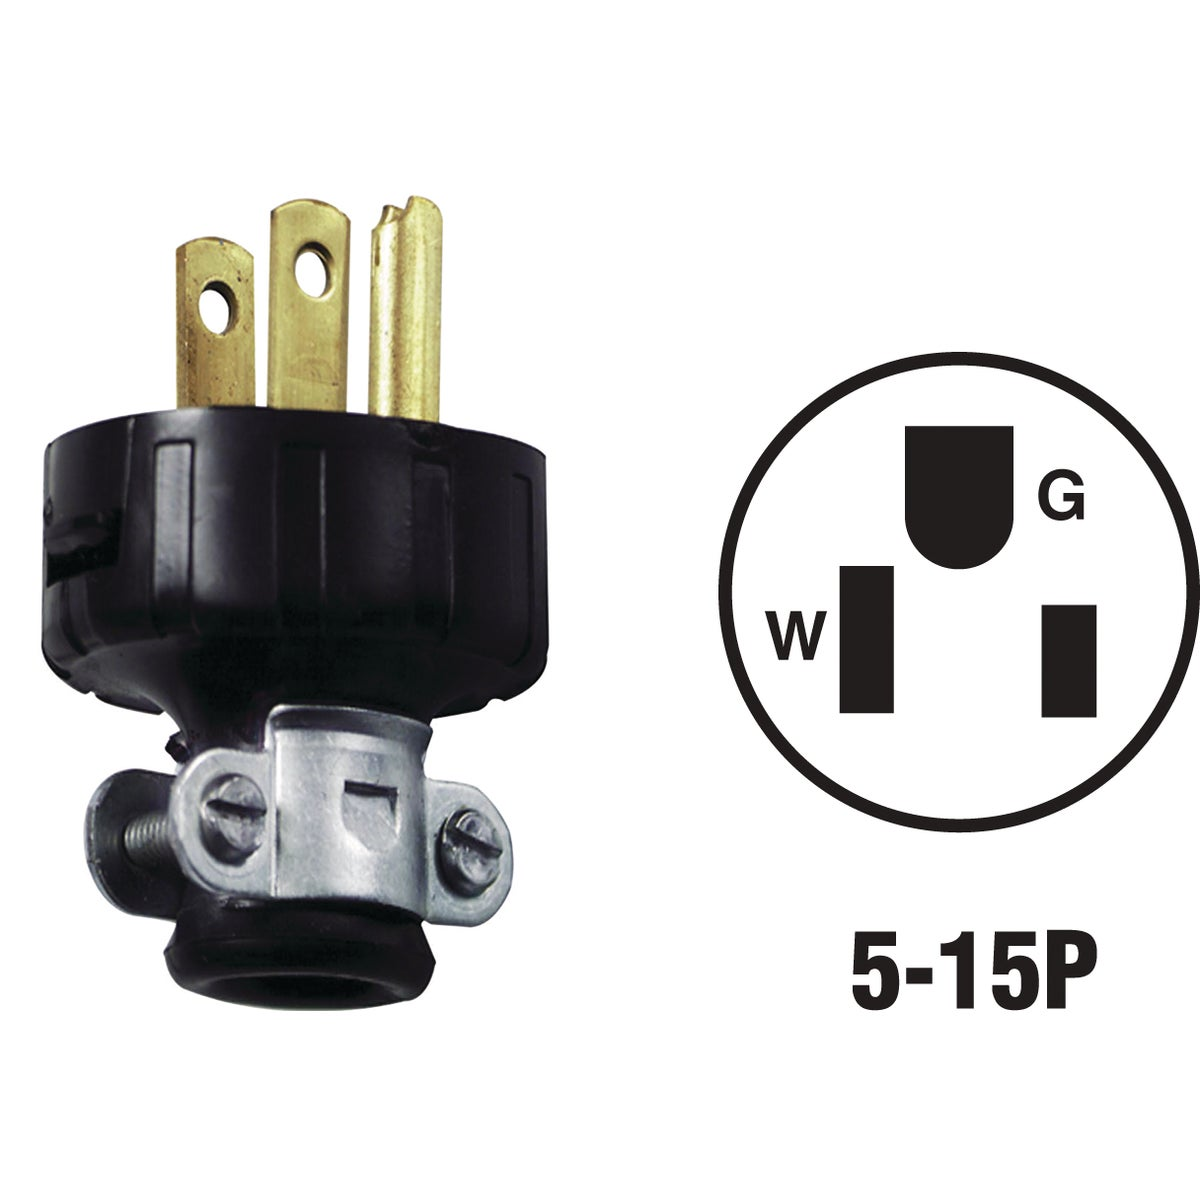 BLK CORD PLUG - 87548648 by Leviton Mfg Co